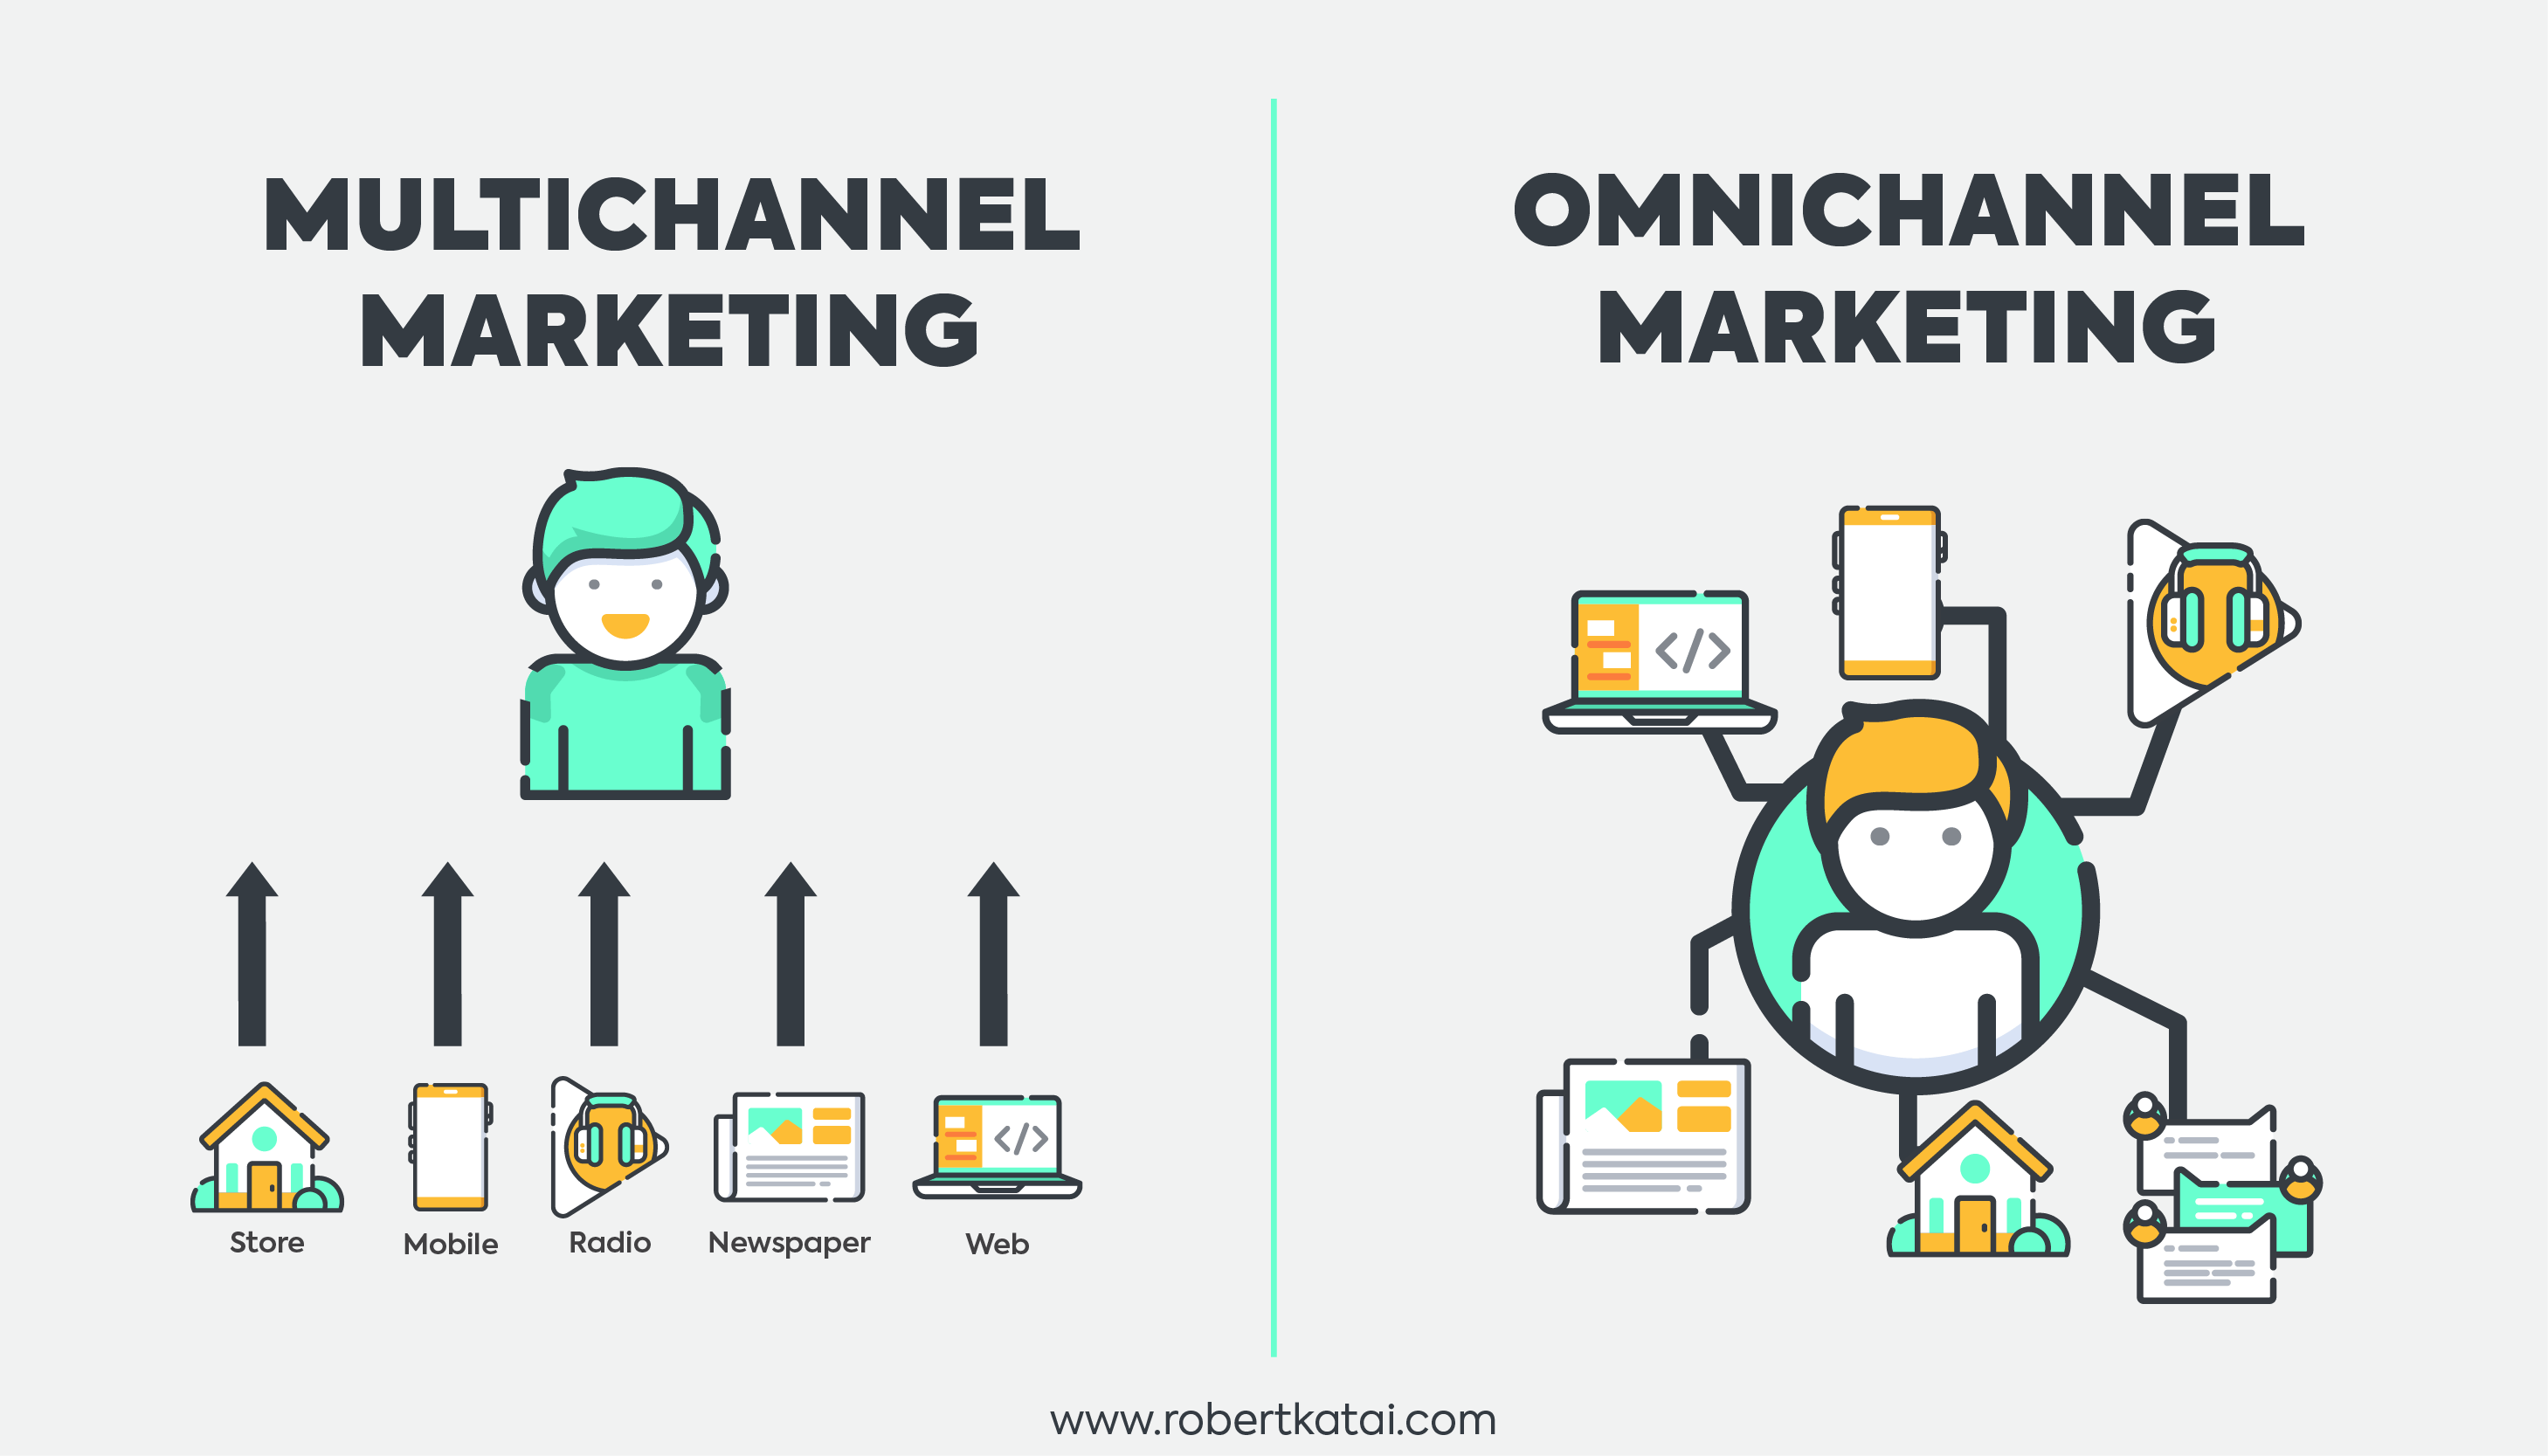 Multi-channel vs. Omni-channel: What's the difference?